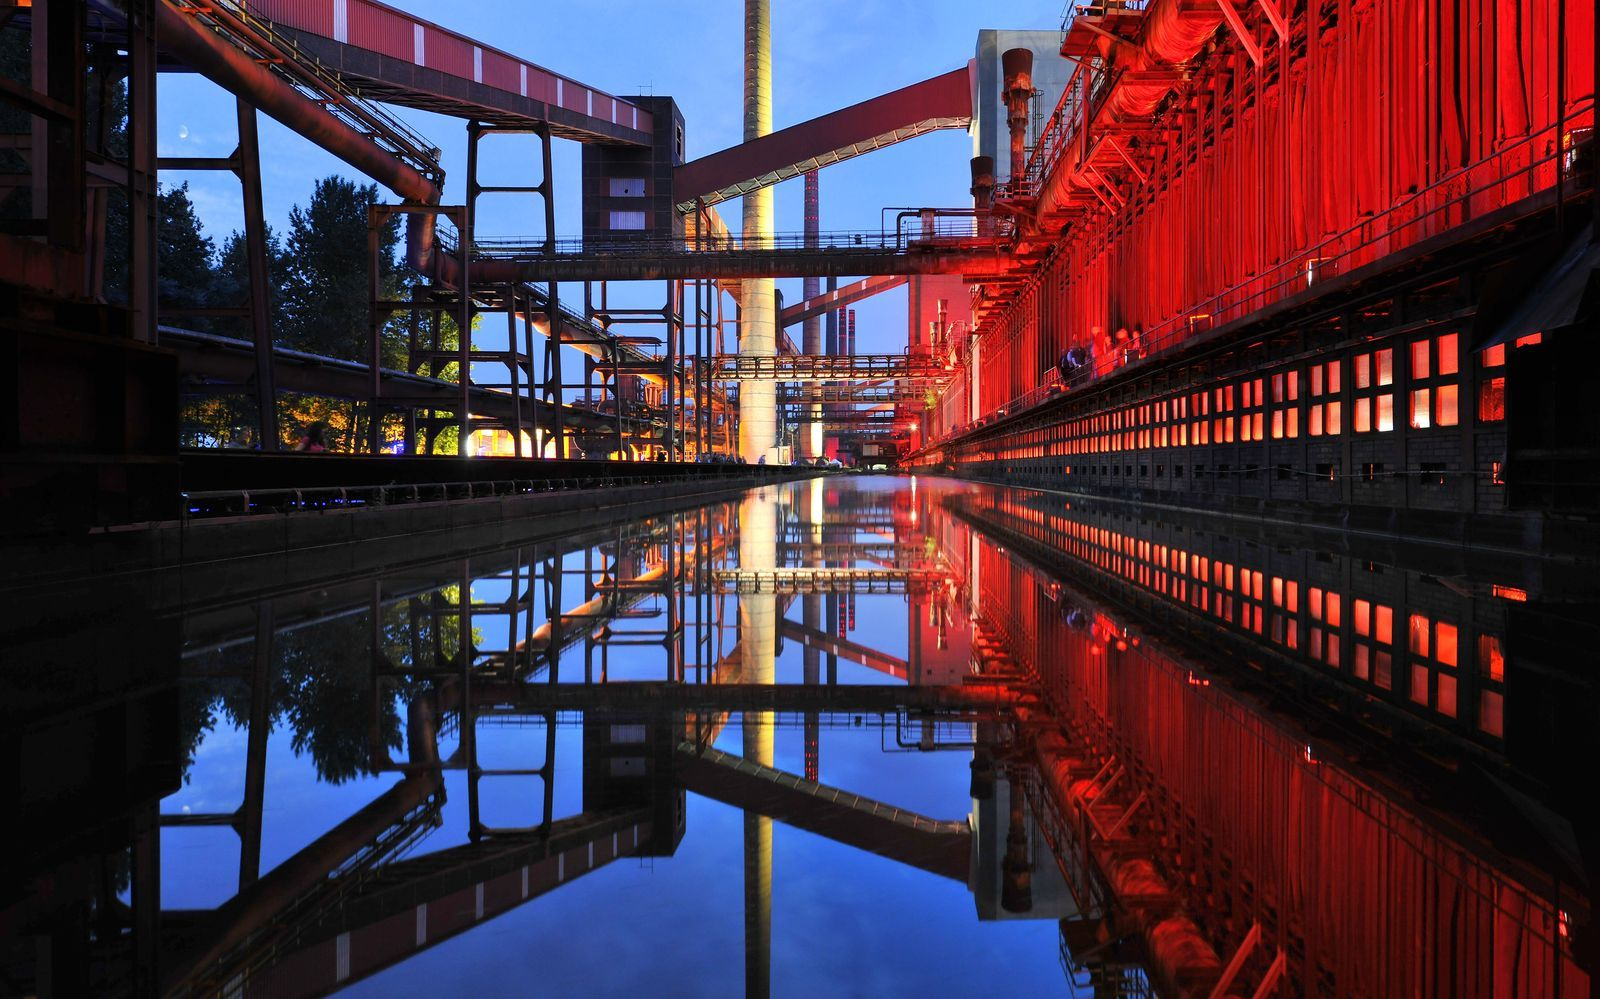 The Route of Industrial Heritage - Essen: Zollverein Coal Mine Industrial Complex